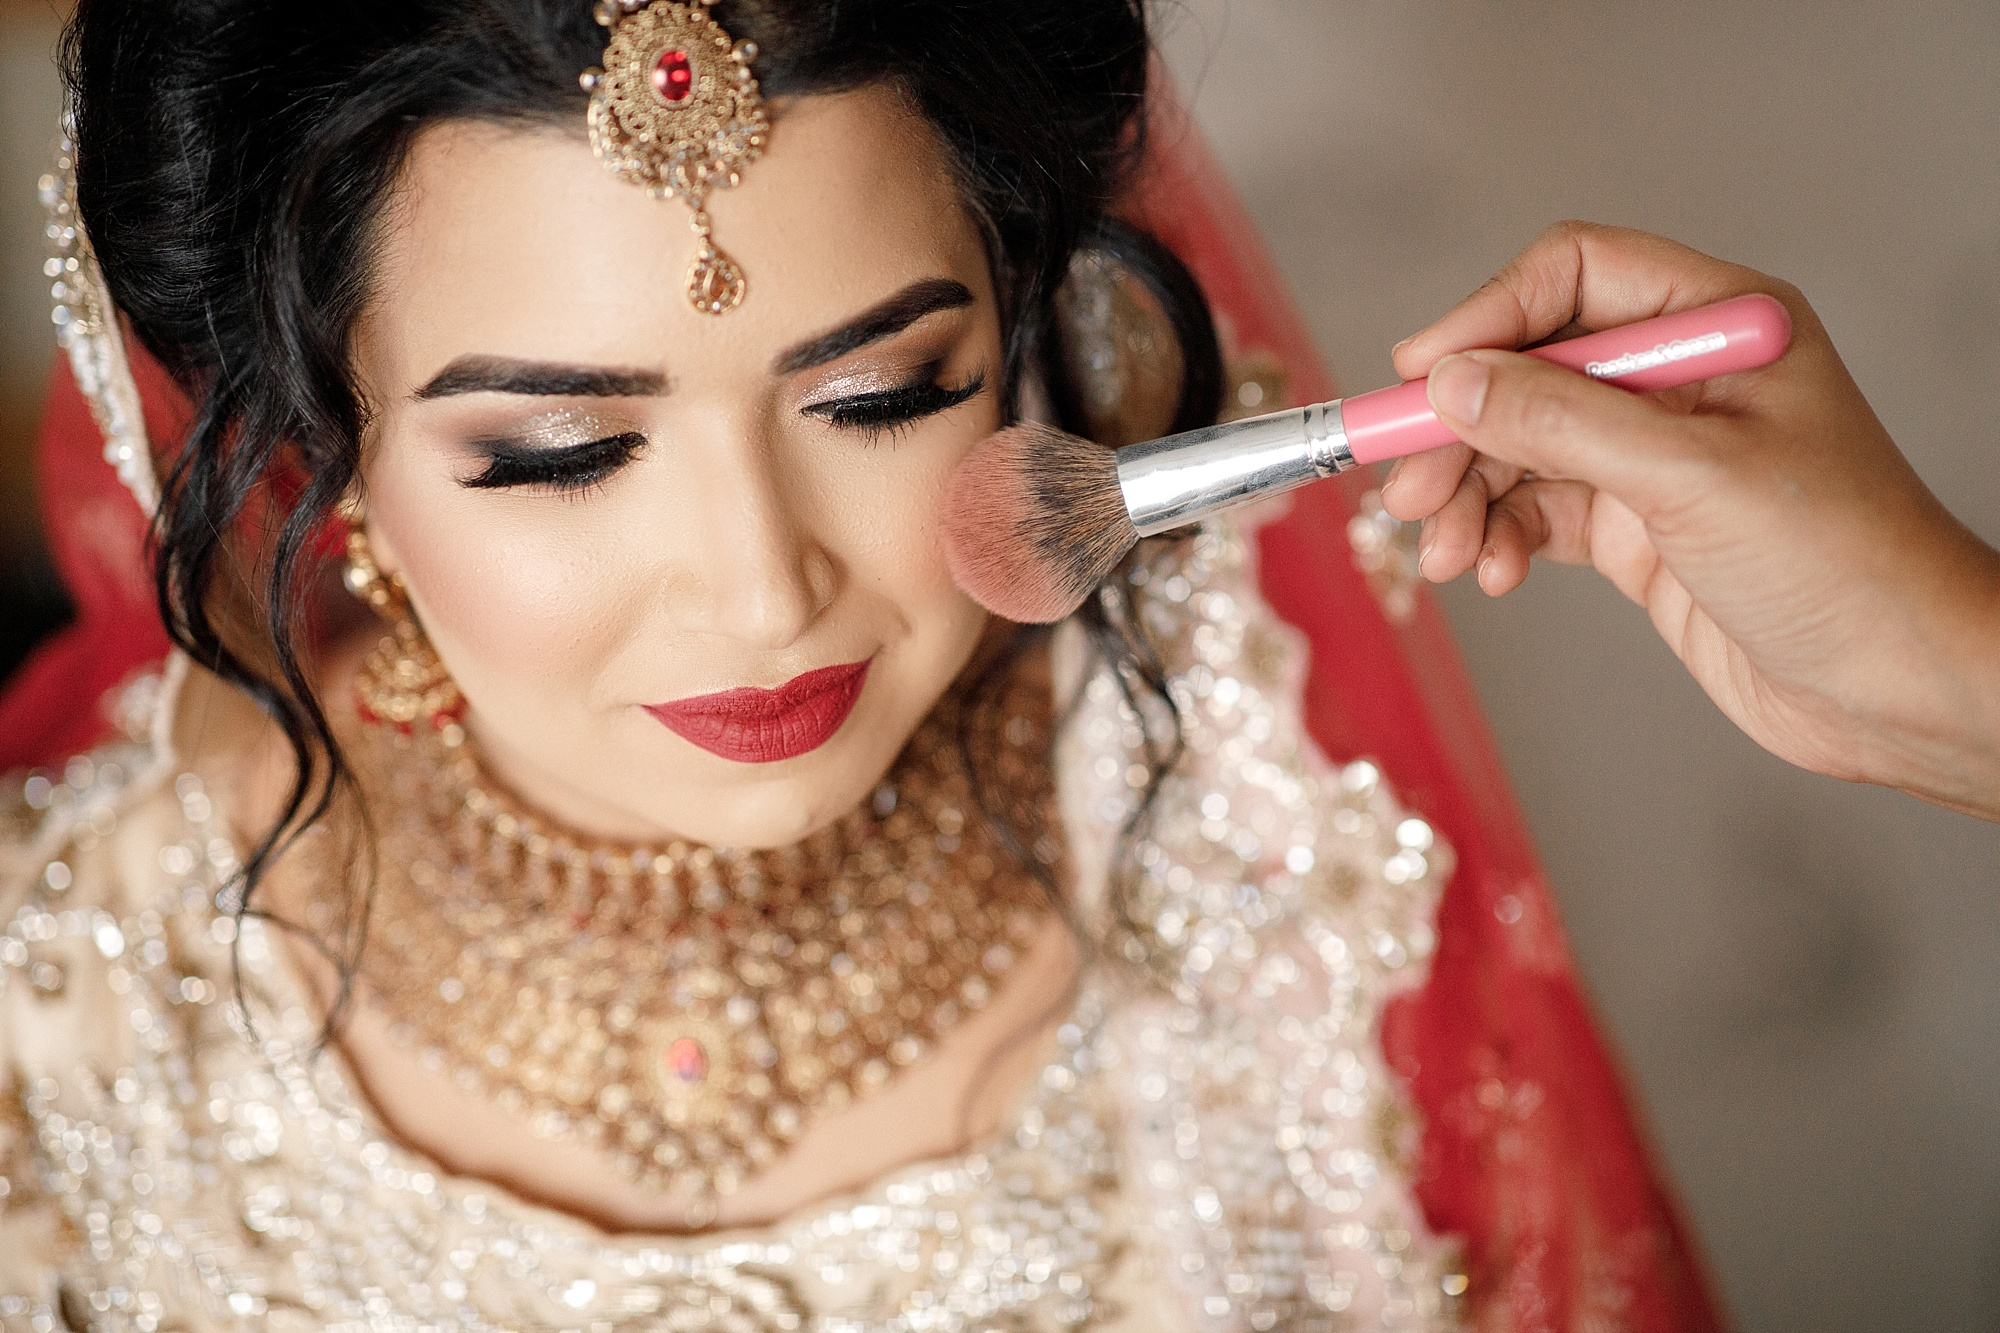 Pakistani Bride Wedding portraits photography at Devonshire Dome